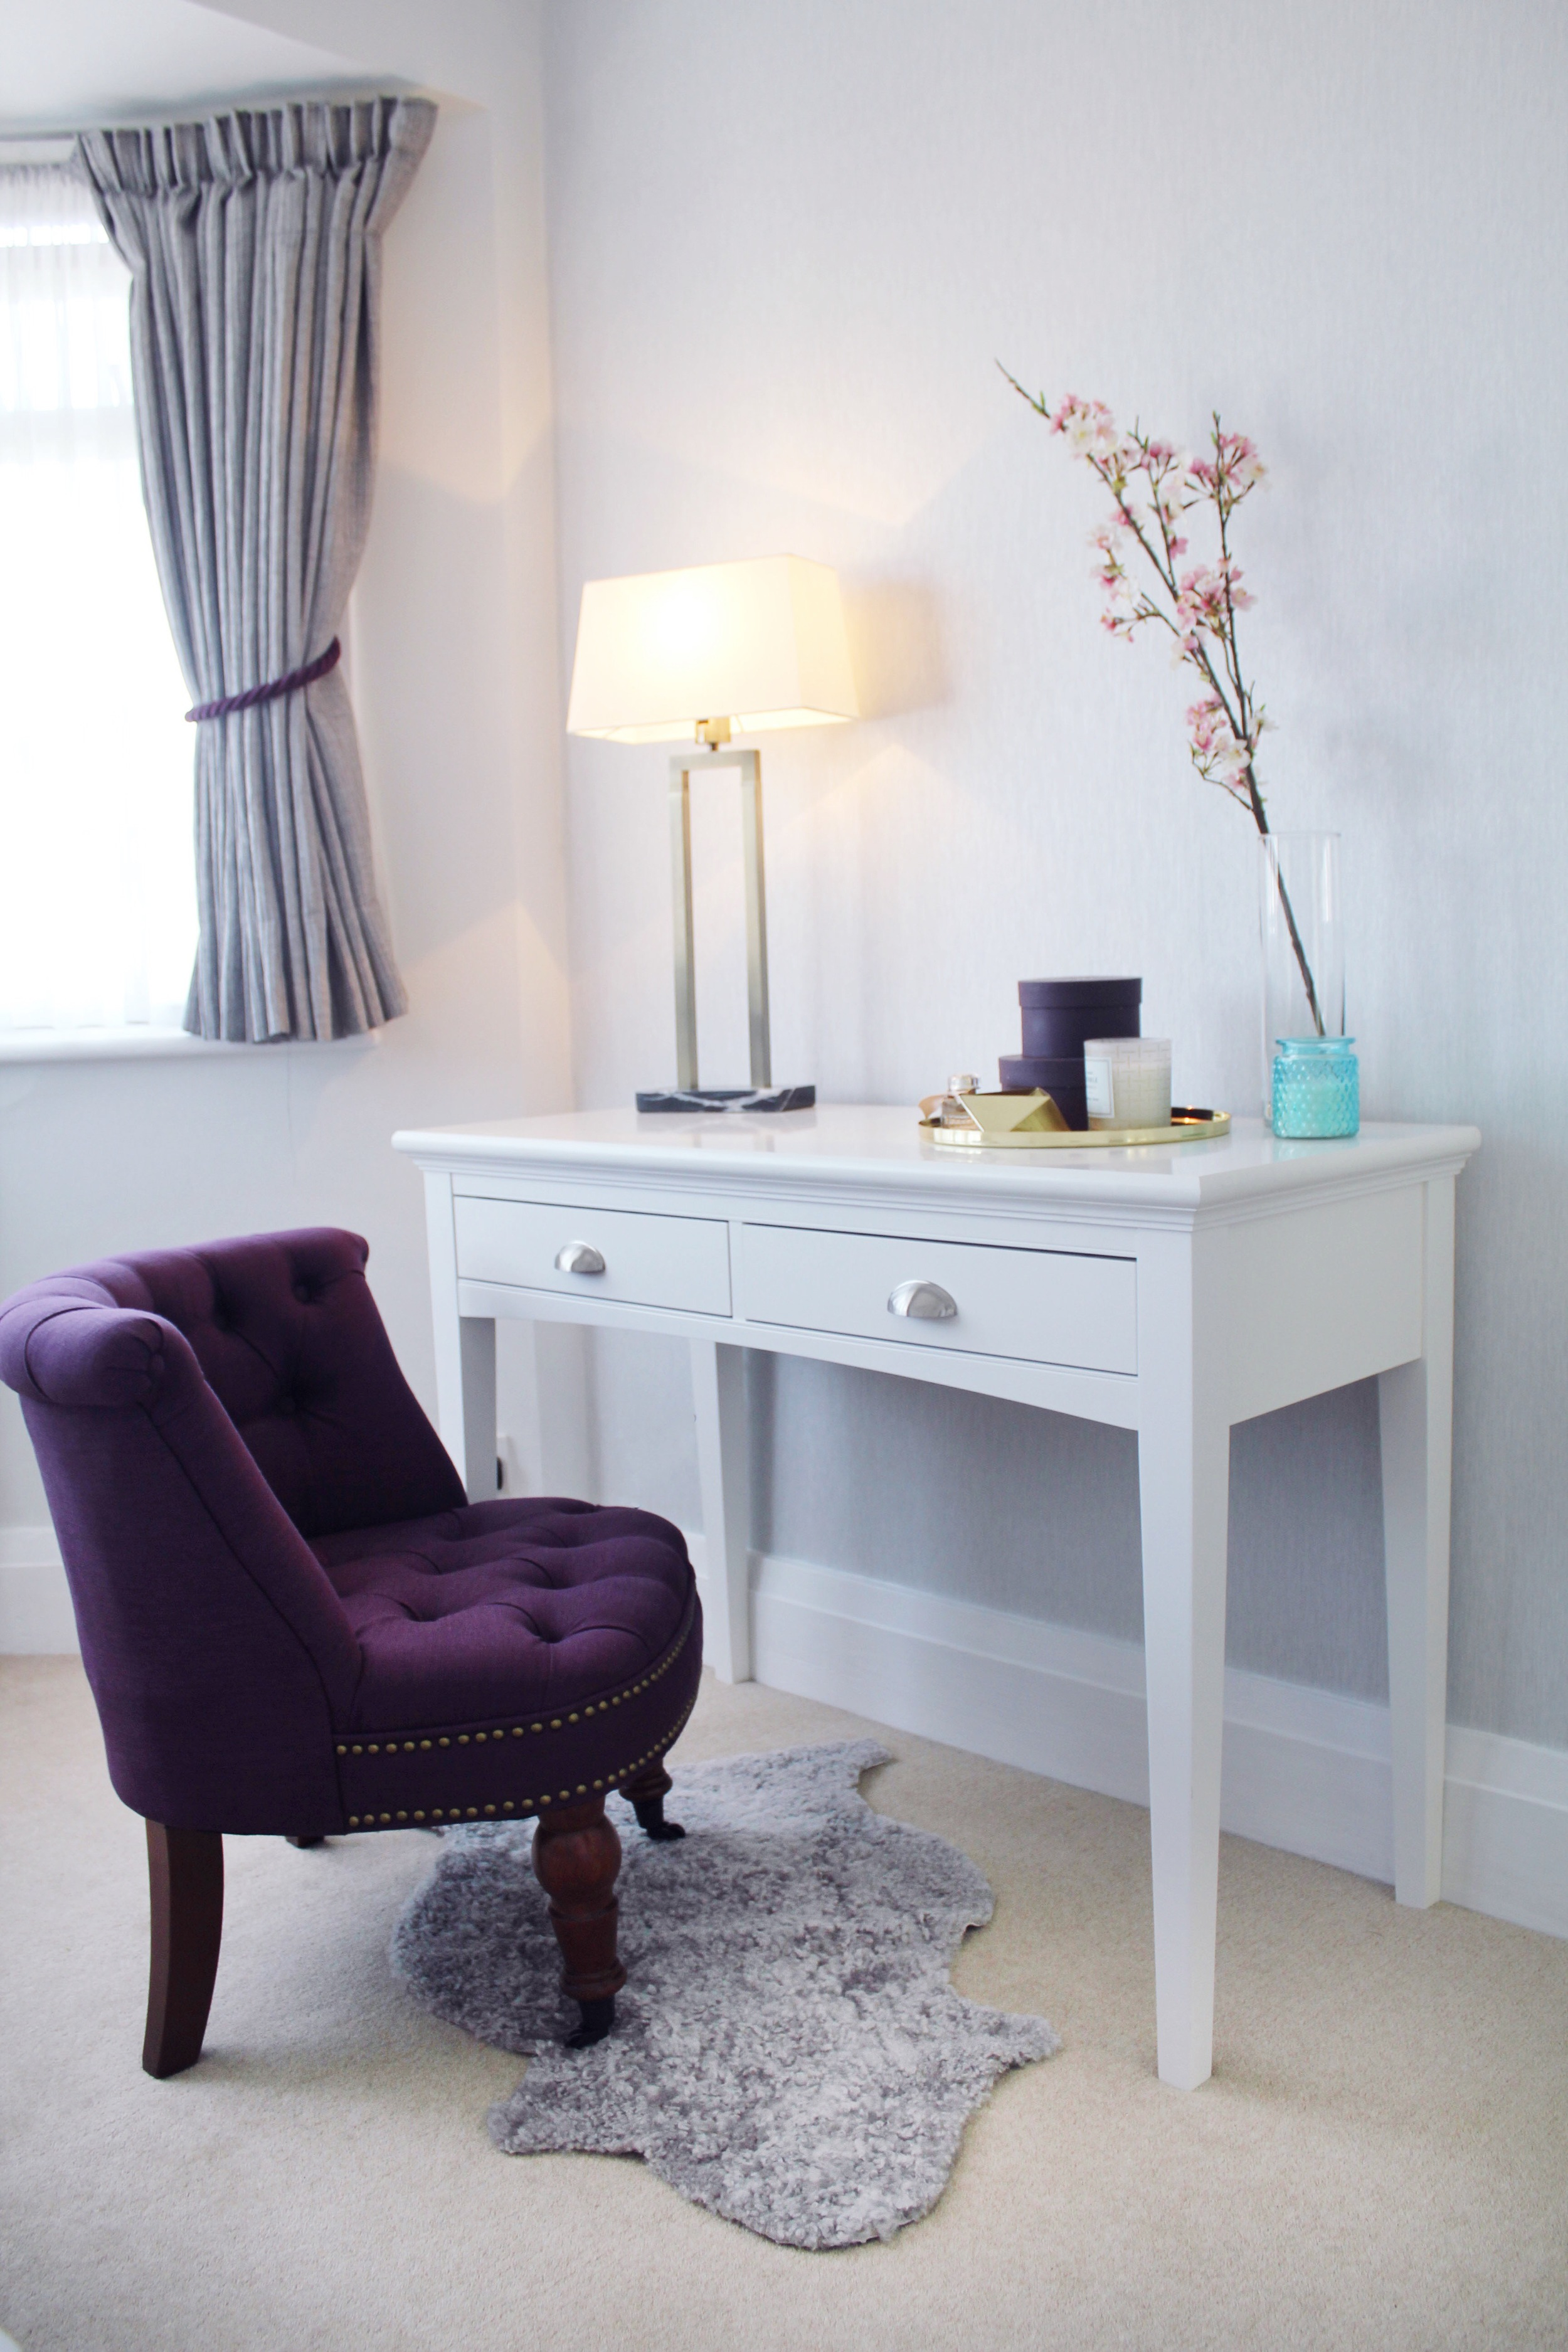 purple and grey bedroom by sarah akwisombe